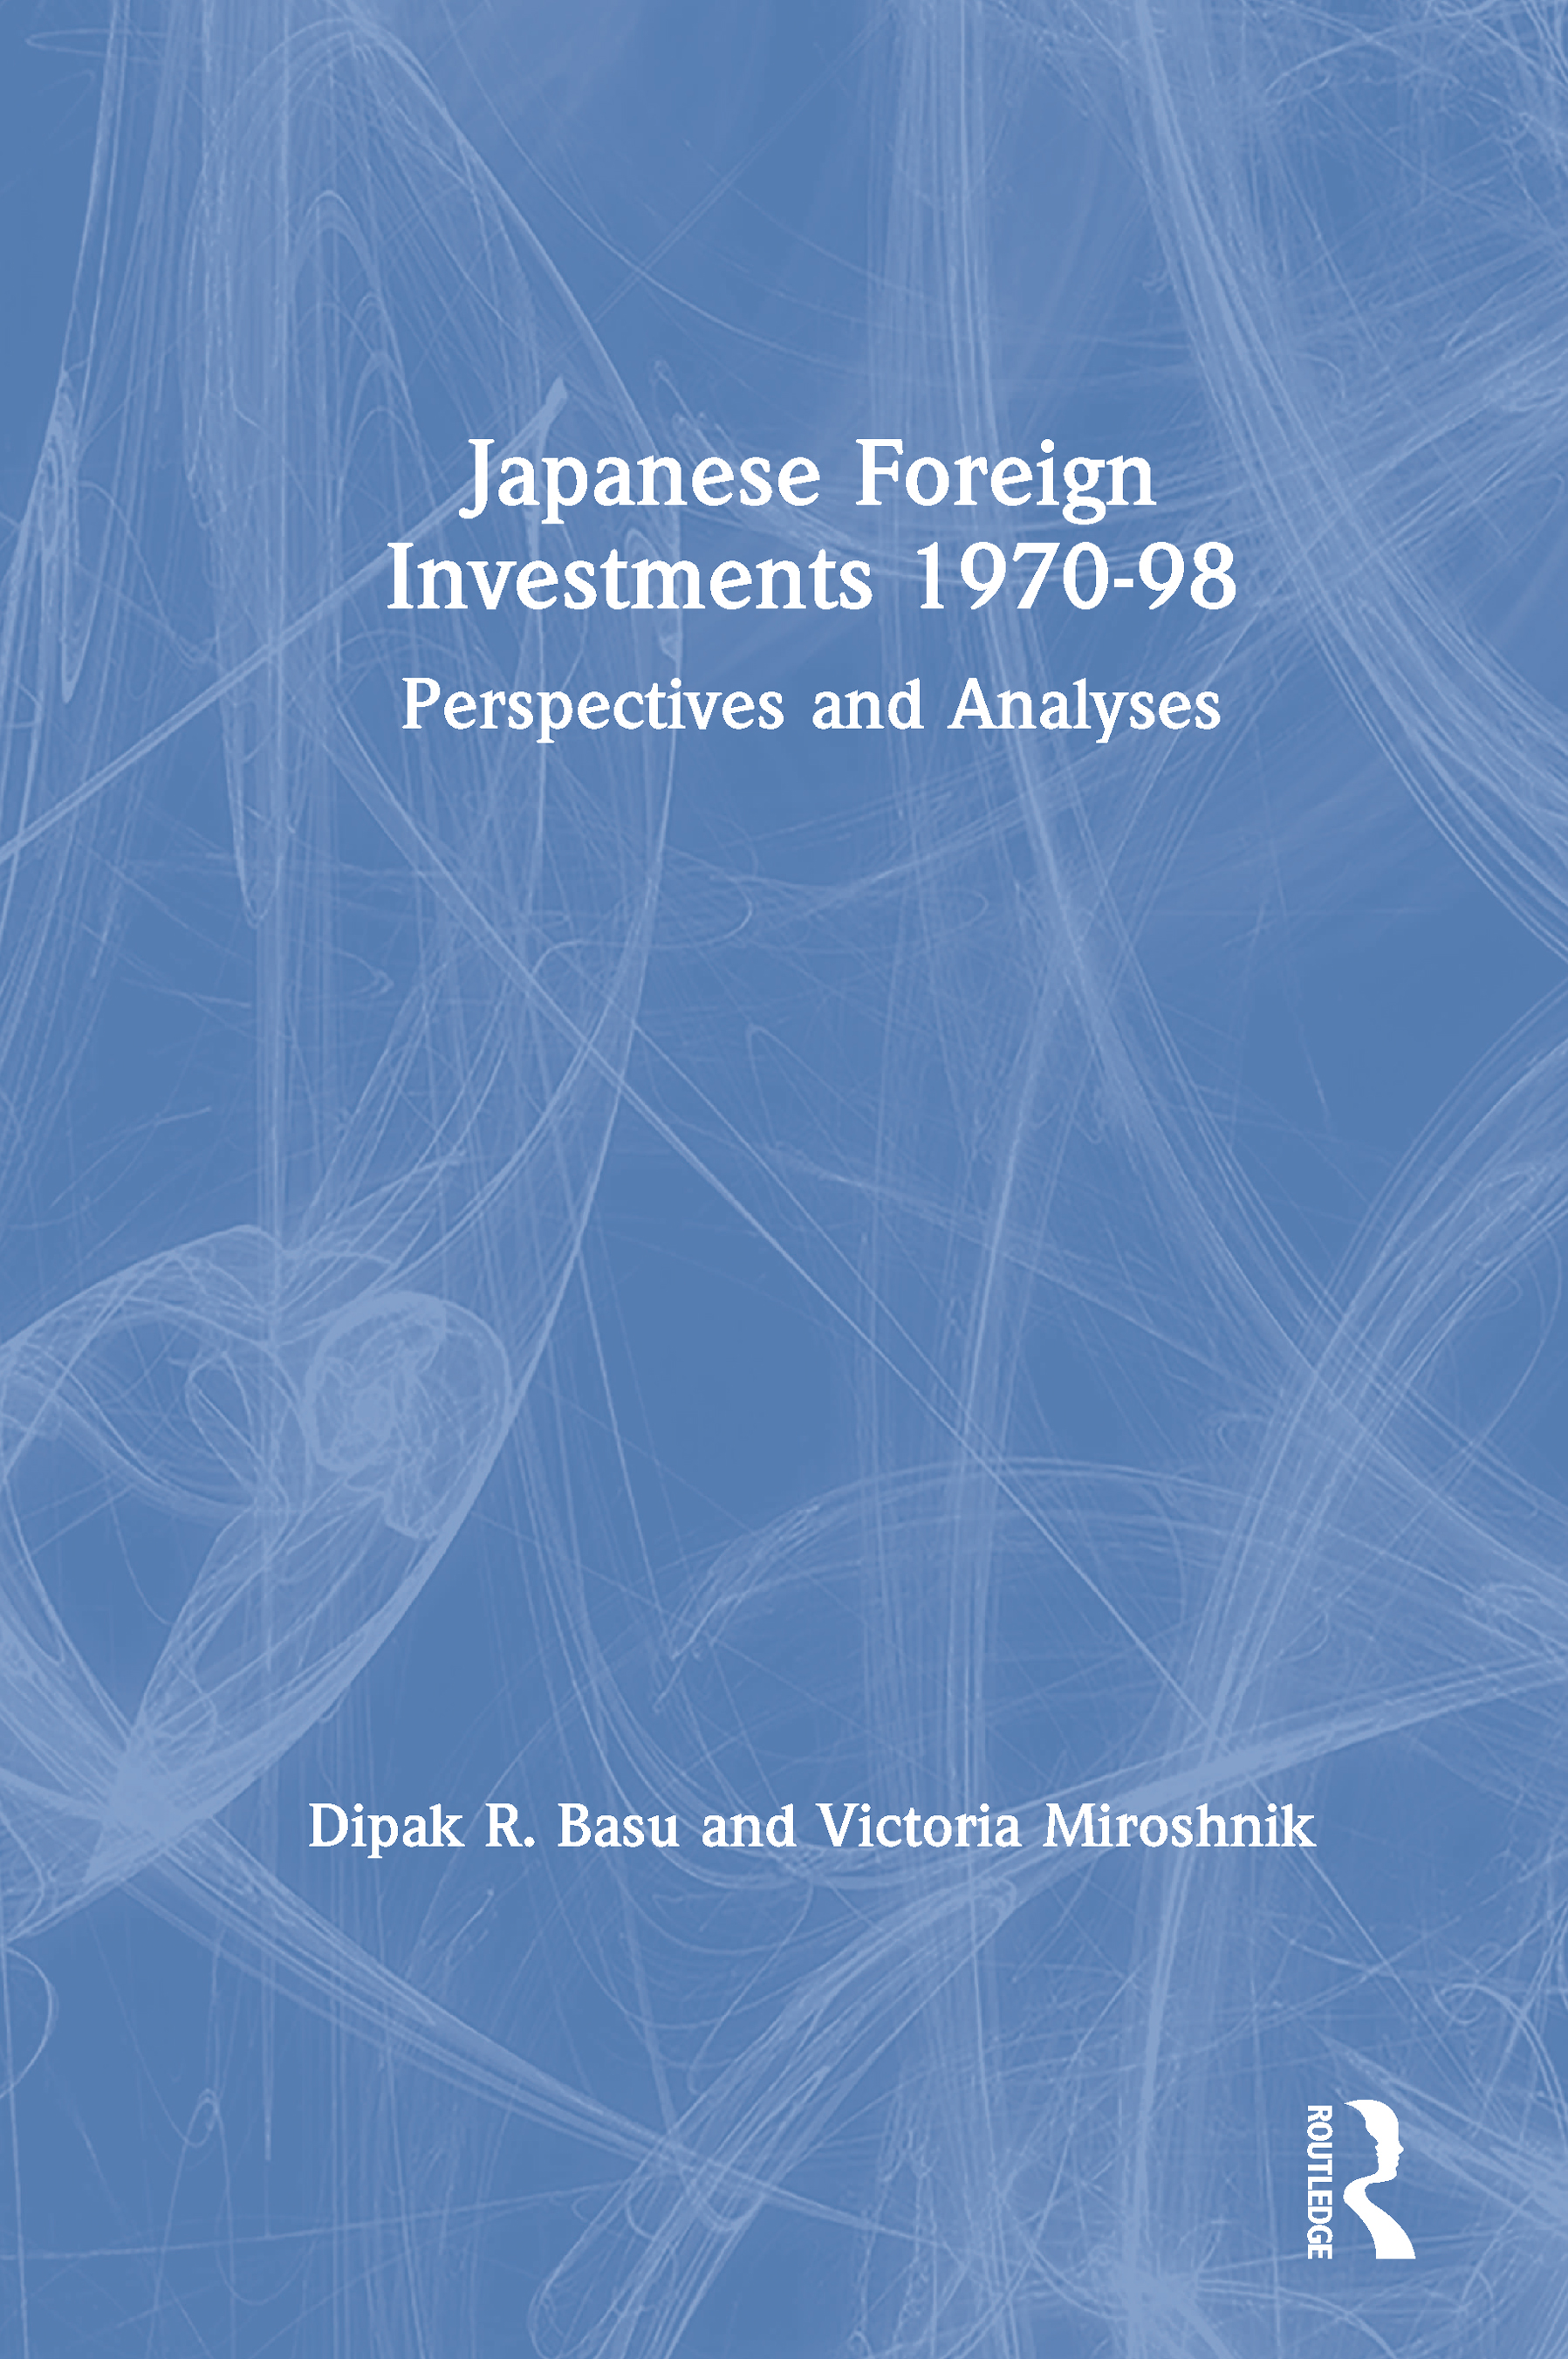 Japanese Foreign Investments, 1970-98: Perspectives and Analyses